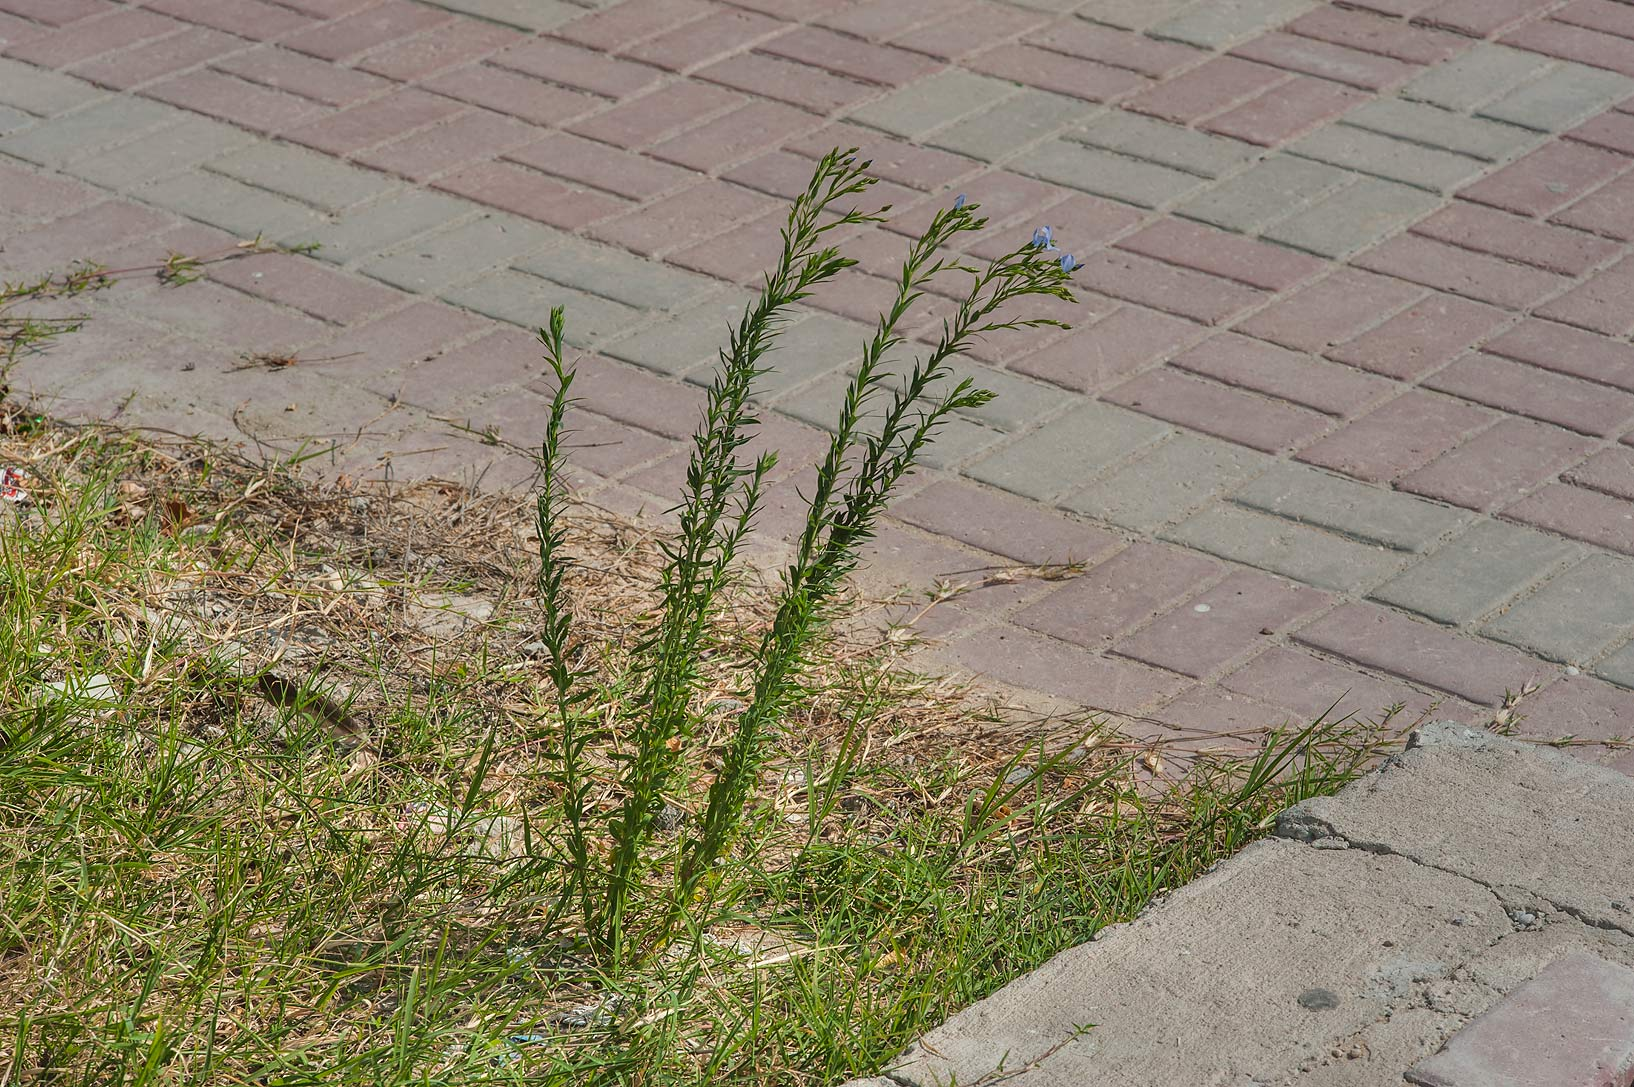 Flax (Linum usitatissimum) growing on waste spot...St. in Onaiza area. Doha, Qatar